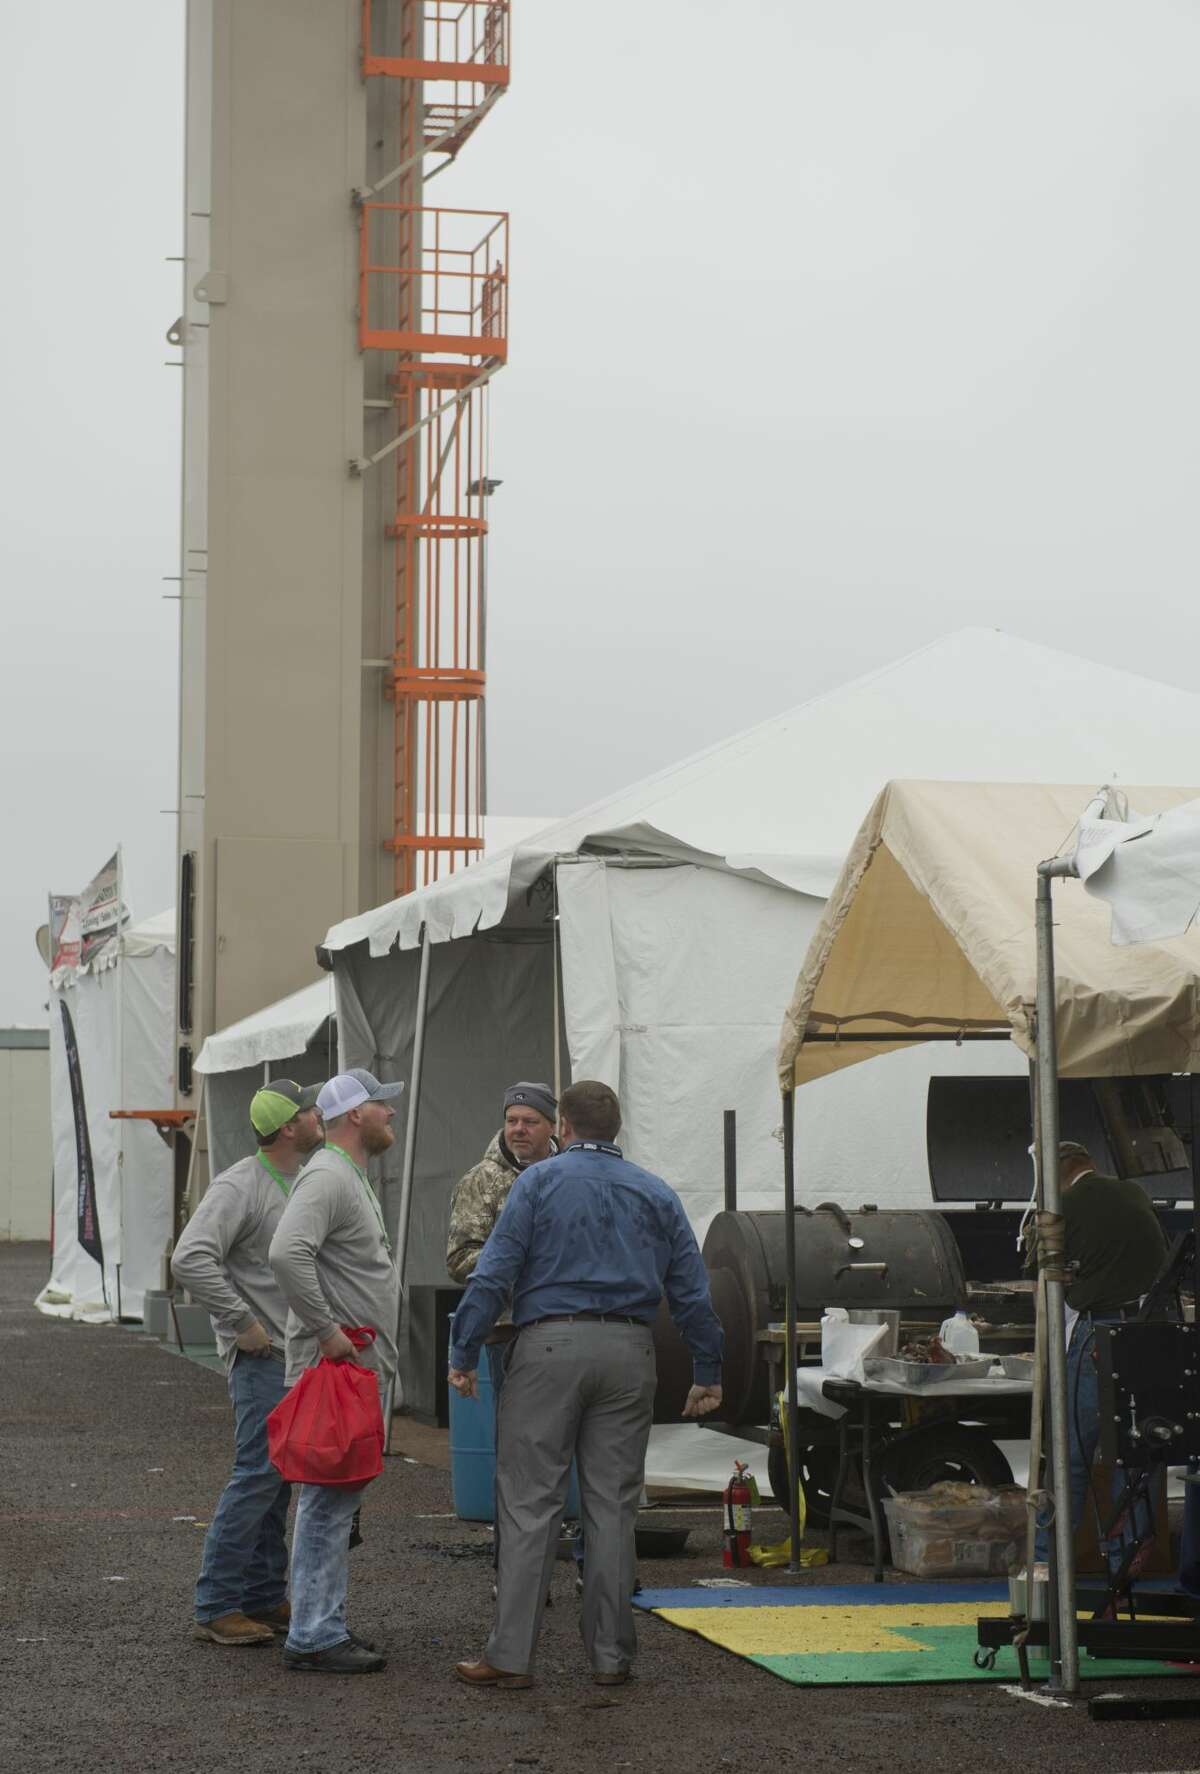 Permian Basin International Oil Show attendees talk with industry suppliers in this 2018 file photo. After a year's delay because of the pandemic, organizers are looking forward to putting on the exhibition this October.